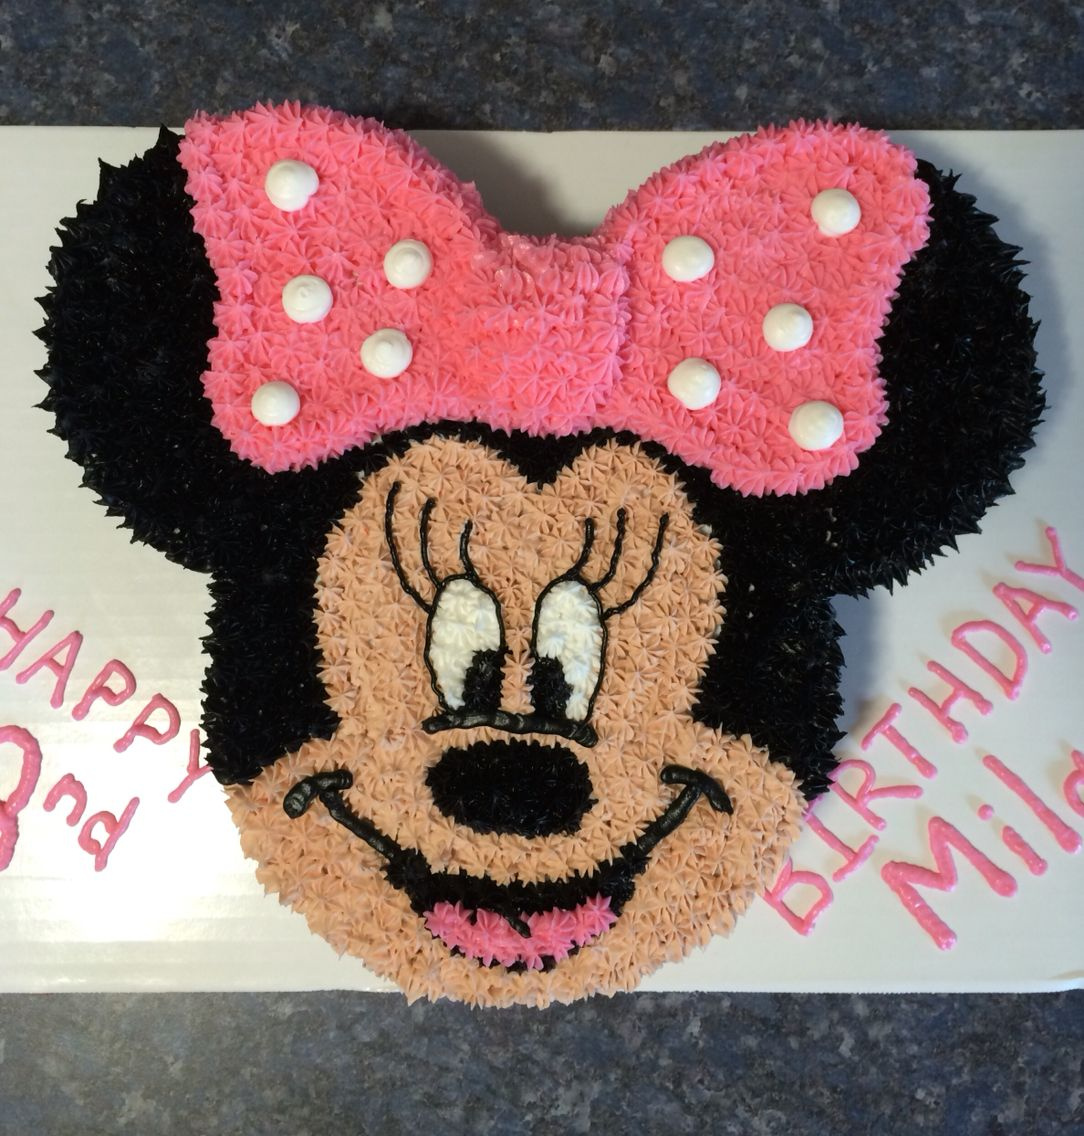 Mini Kuchenform Minnie Mouse Cake Using 1 8 Quot Round Pan And 2 6 Quot Round Pans